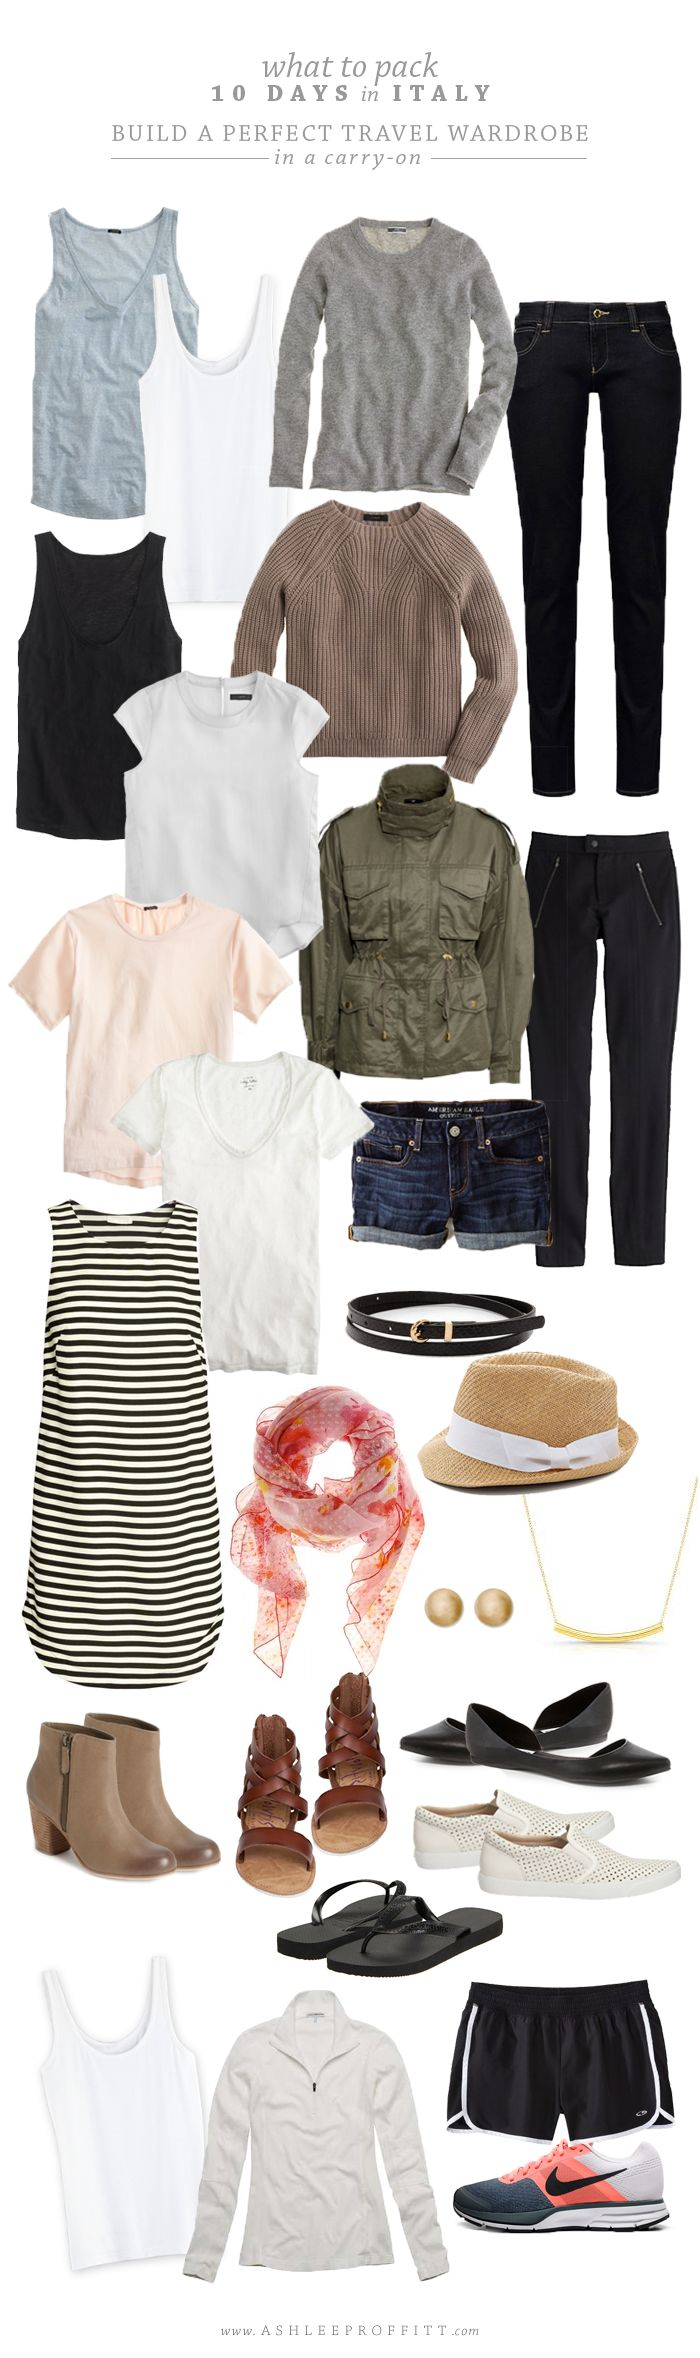 What To Pack: 10 Days in Italy | Build a perfect travel wardrobe! | Intentional Style by Ashlee Proffitt and Megan Michele